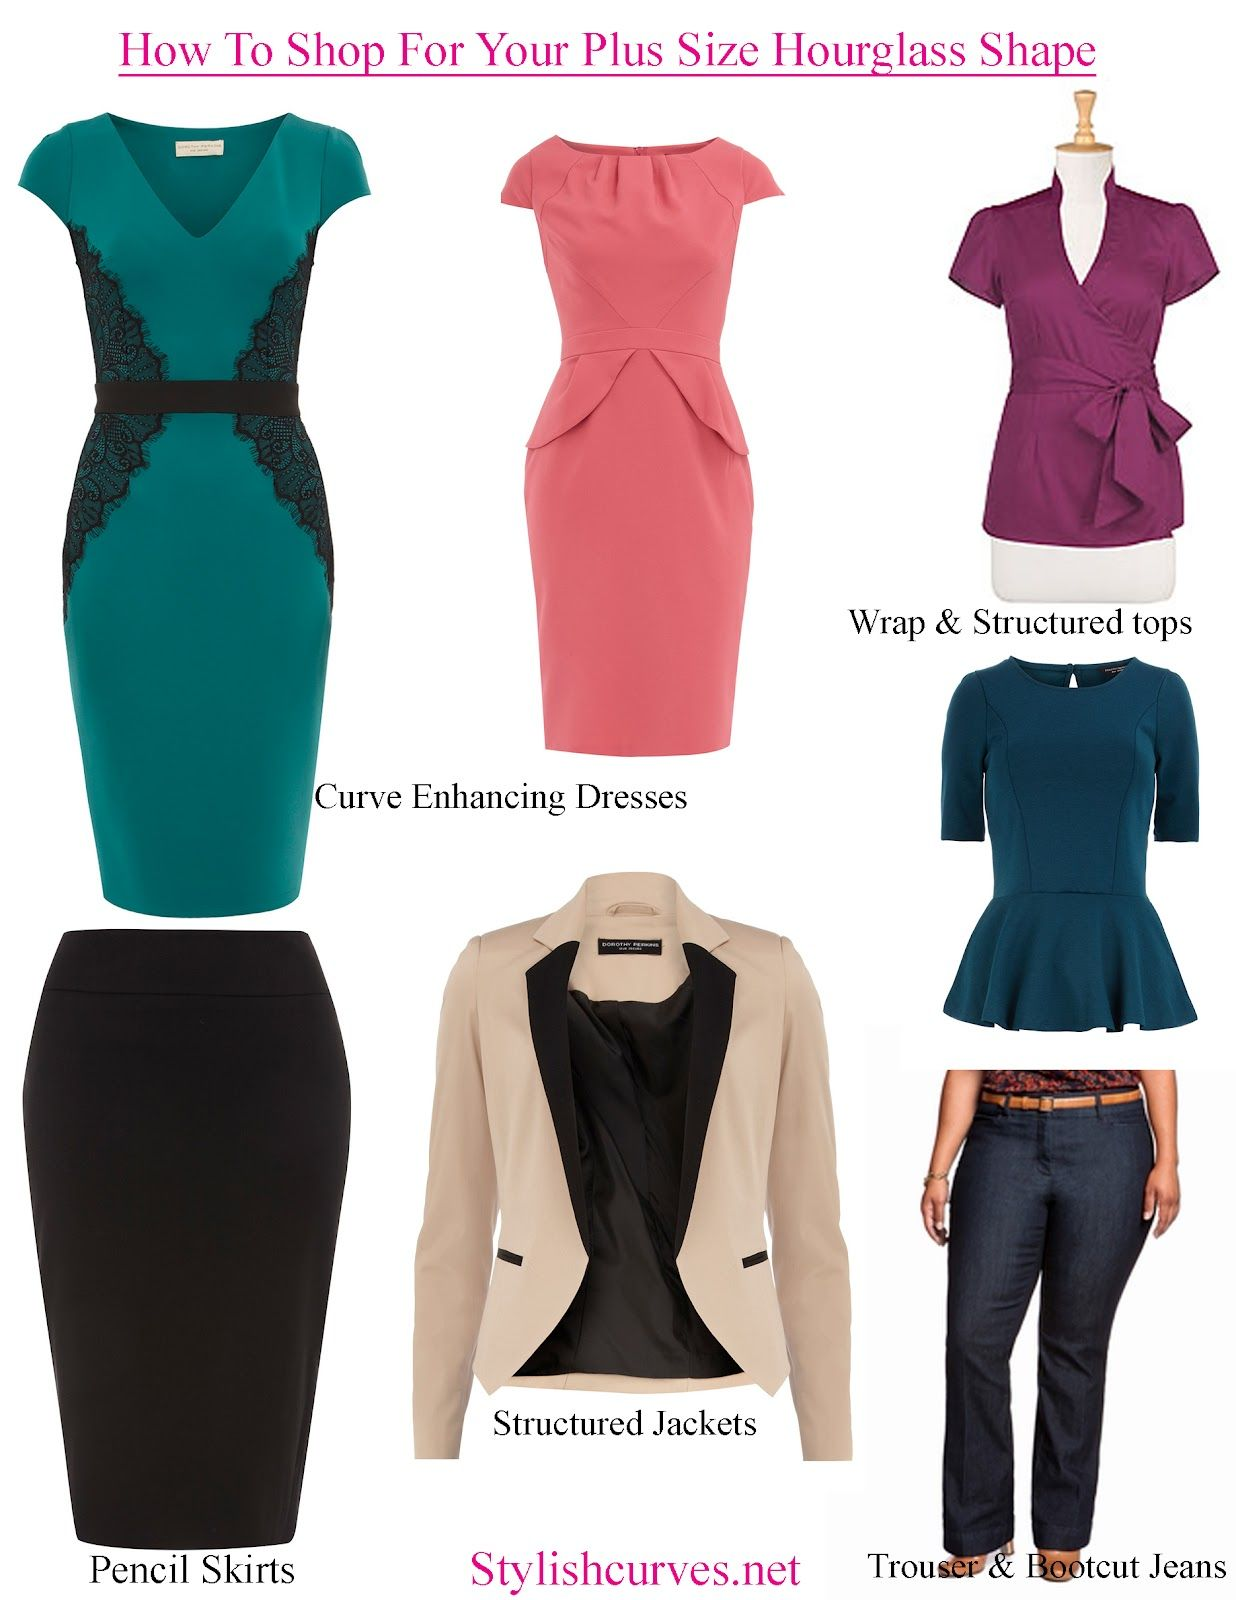 Dresses for apple shaped women - Tops For Rectangle Shaped Women Style Goal Hourglass Shapes Much Like The Apple Tend